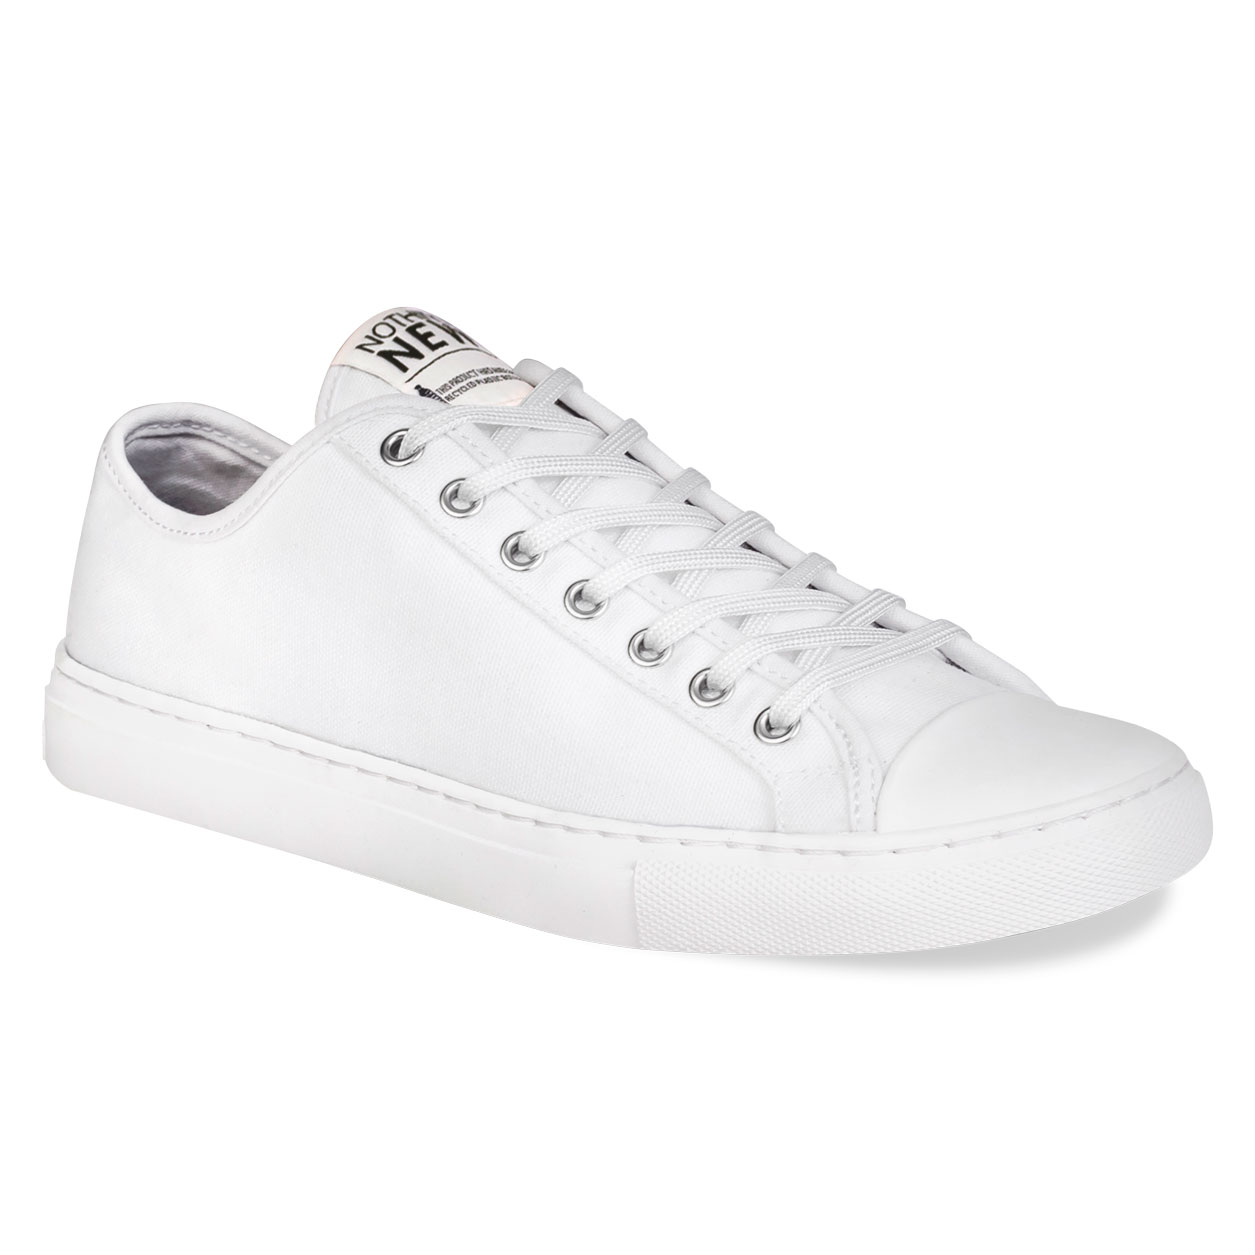 Nothing new white lace-up sneakers